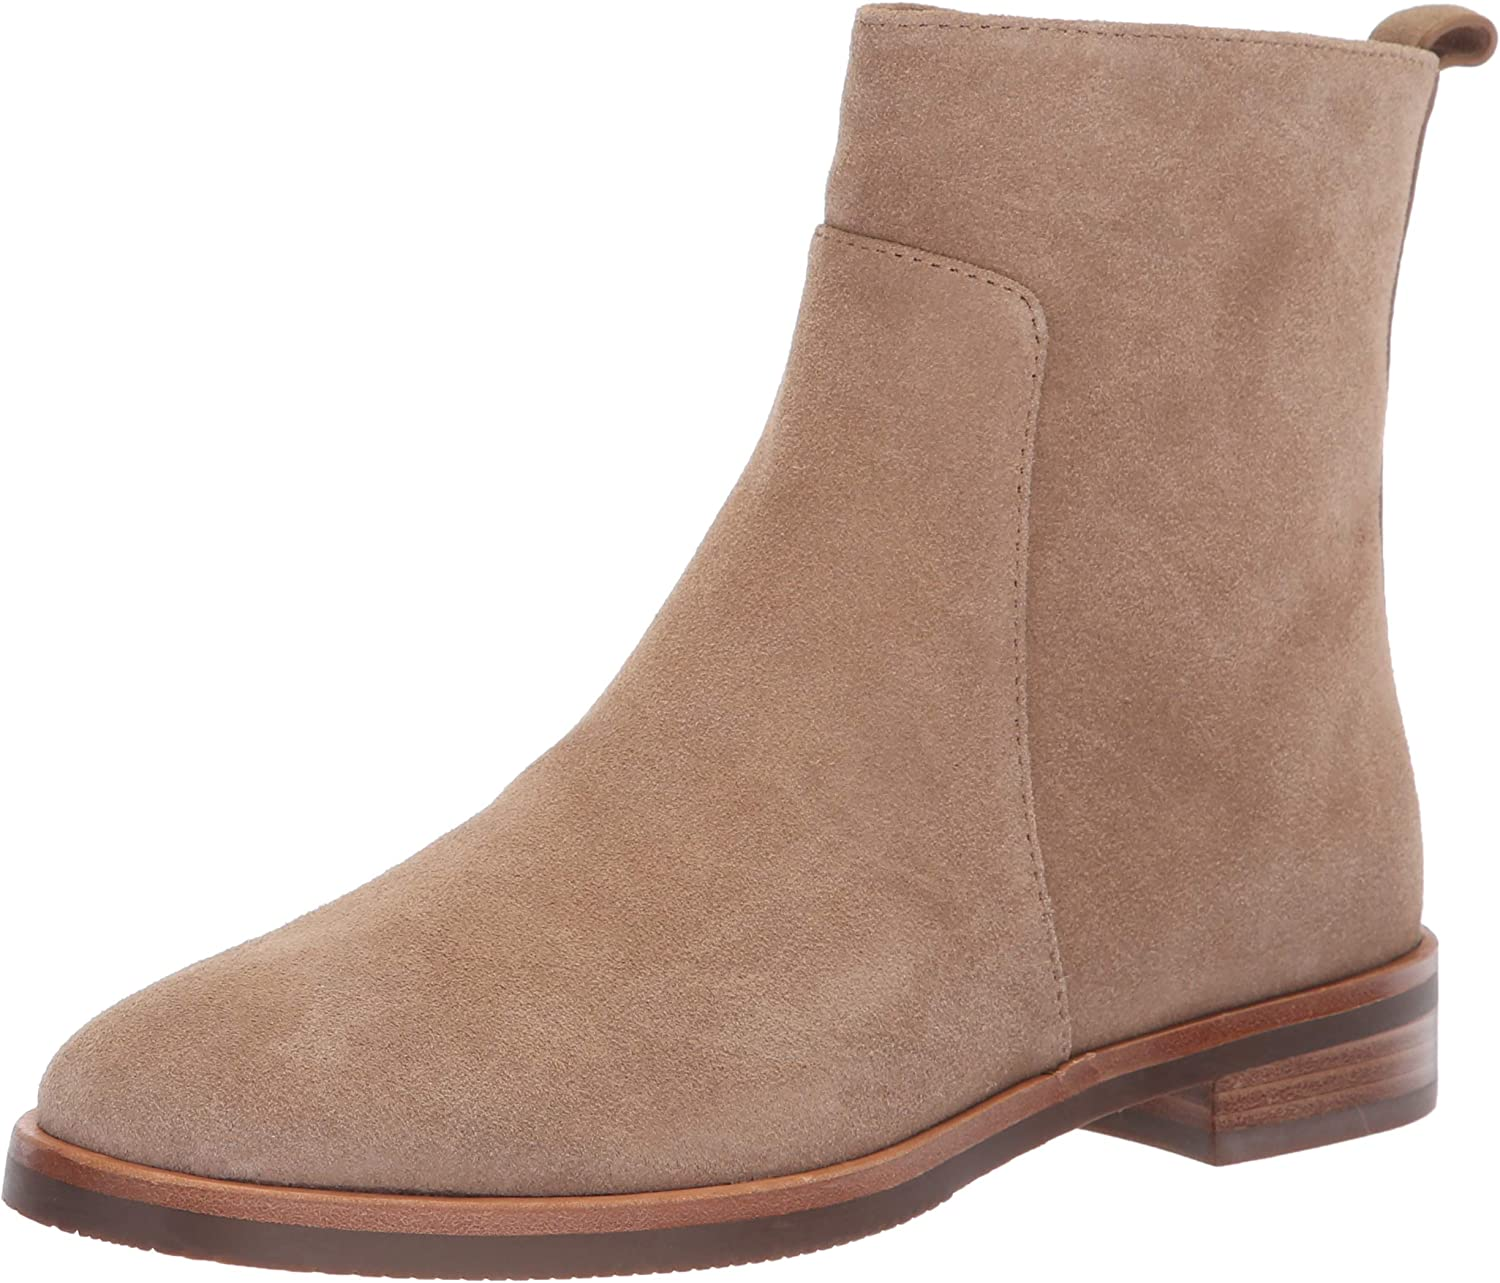 Gentle Souls Womens Terran Flat Ankle Bootie Ankle Boot